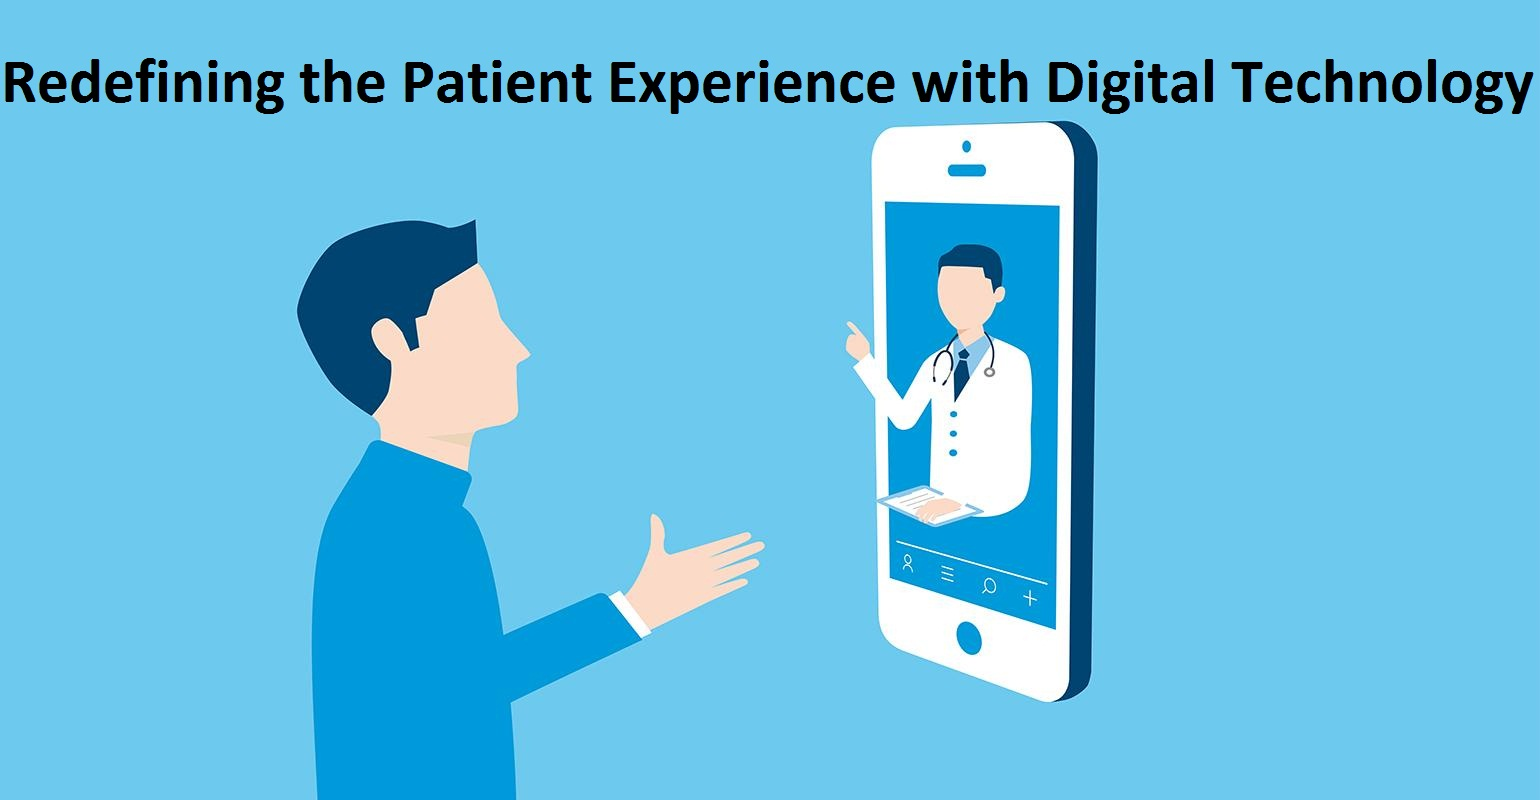 Redefining the Patient Experience with Digital Technology